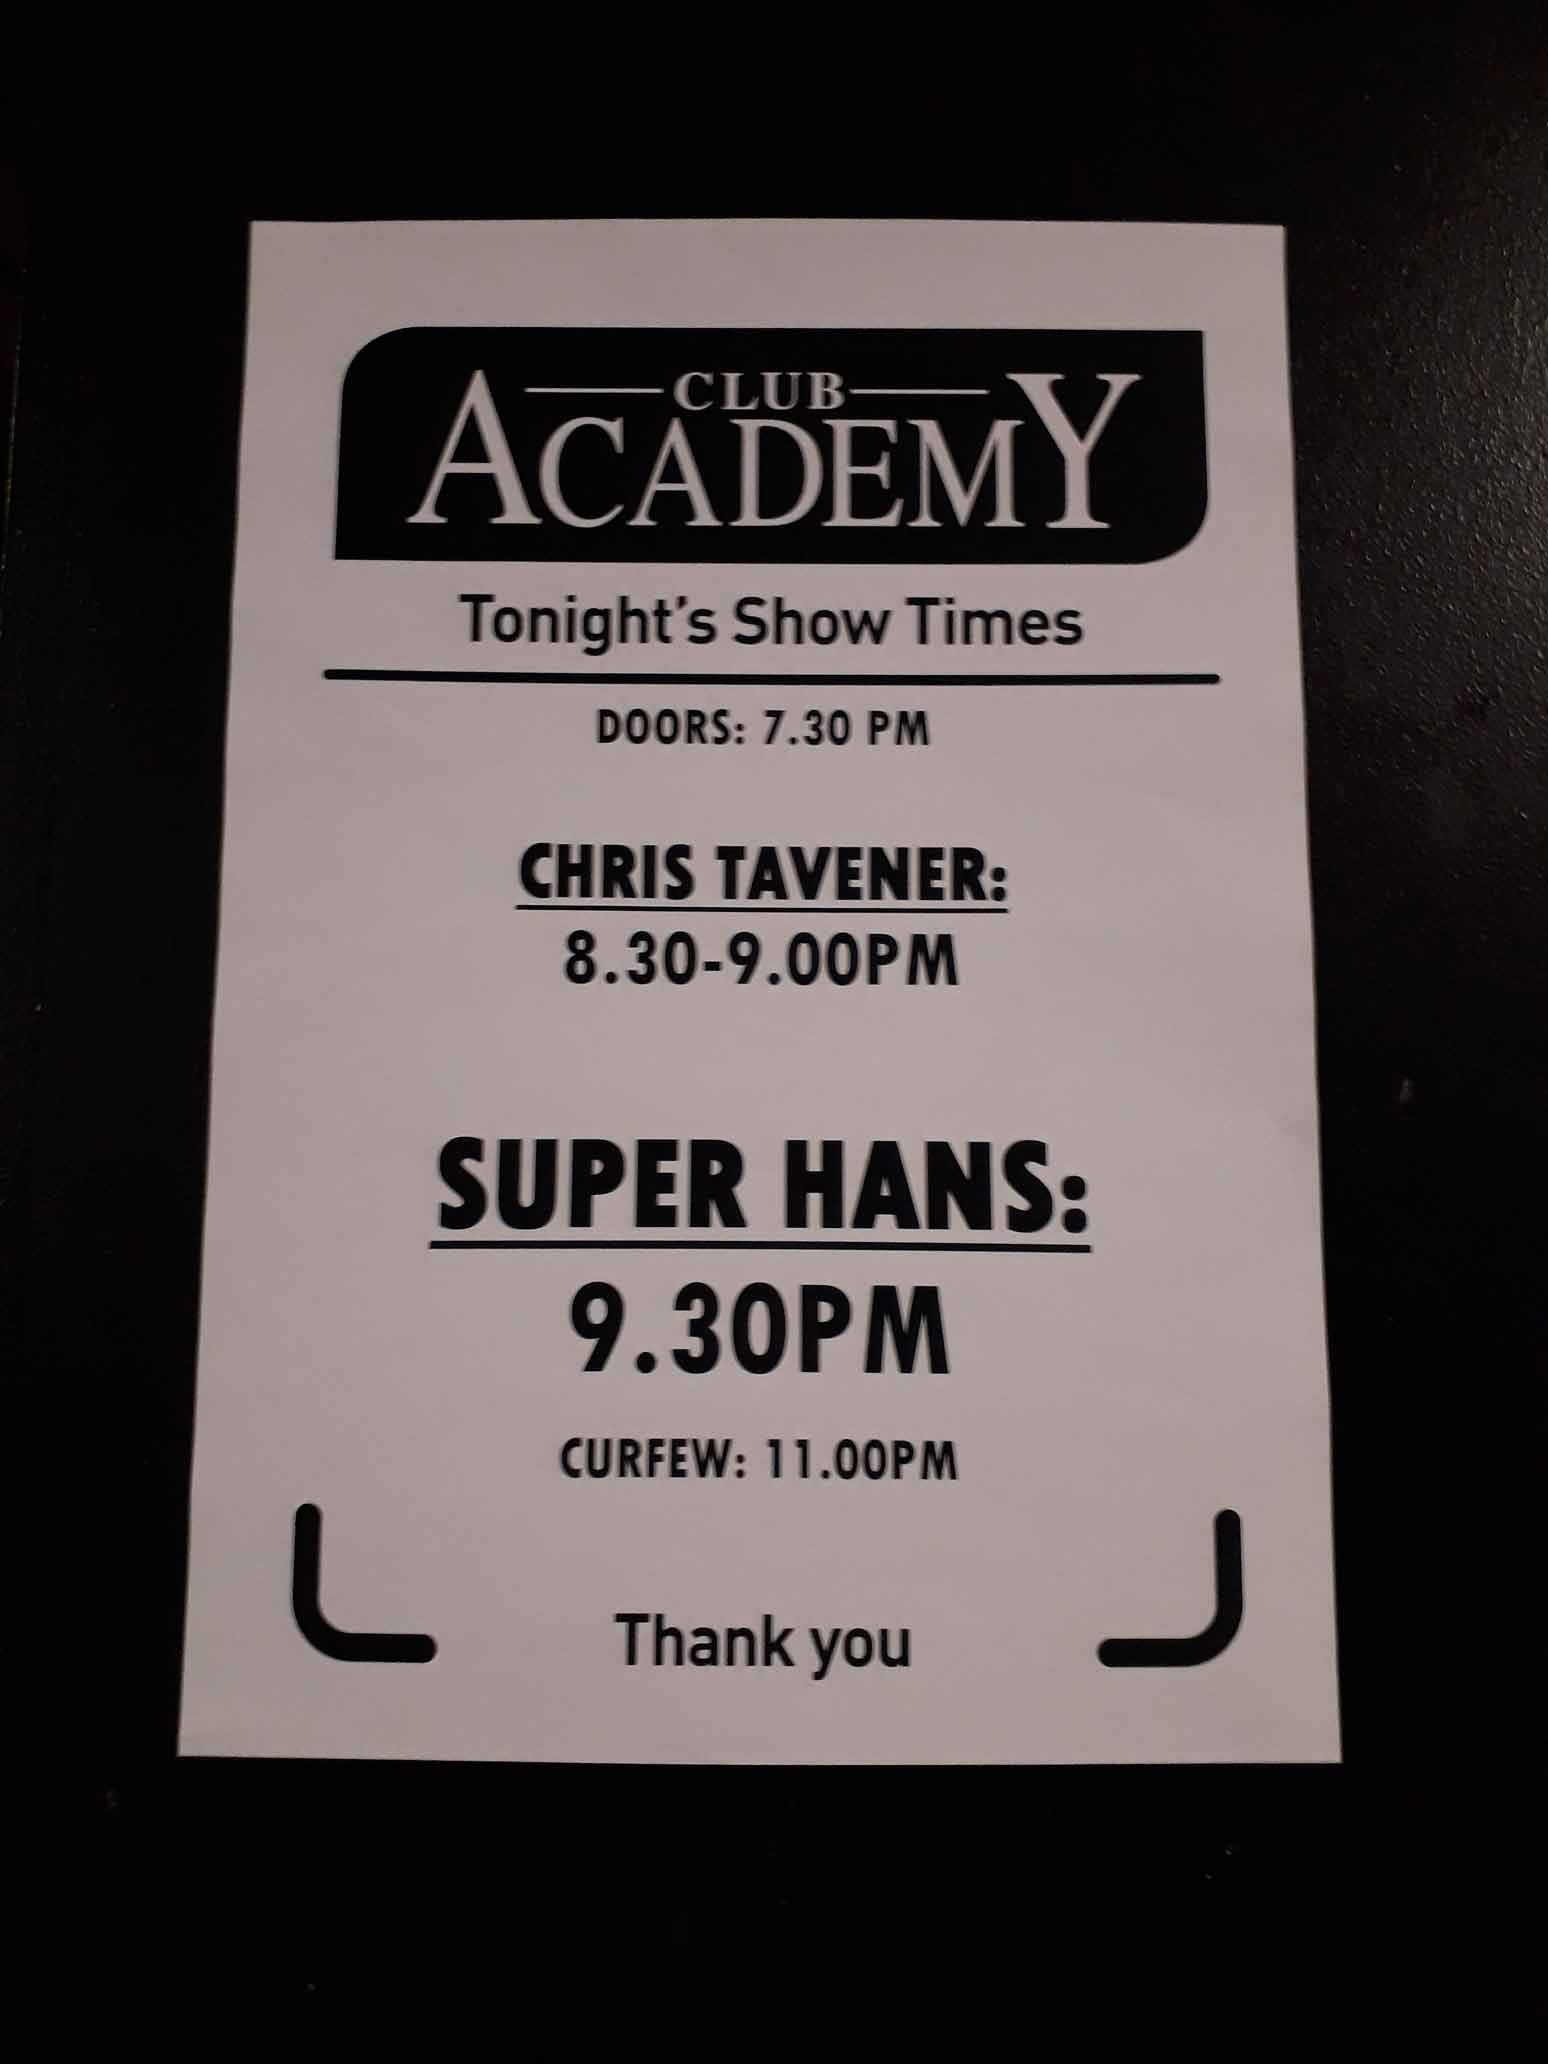 Chris Tavener Supporting Super Hans at Manchester Club Academy